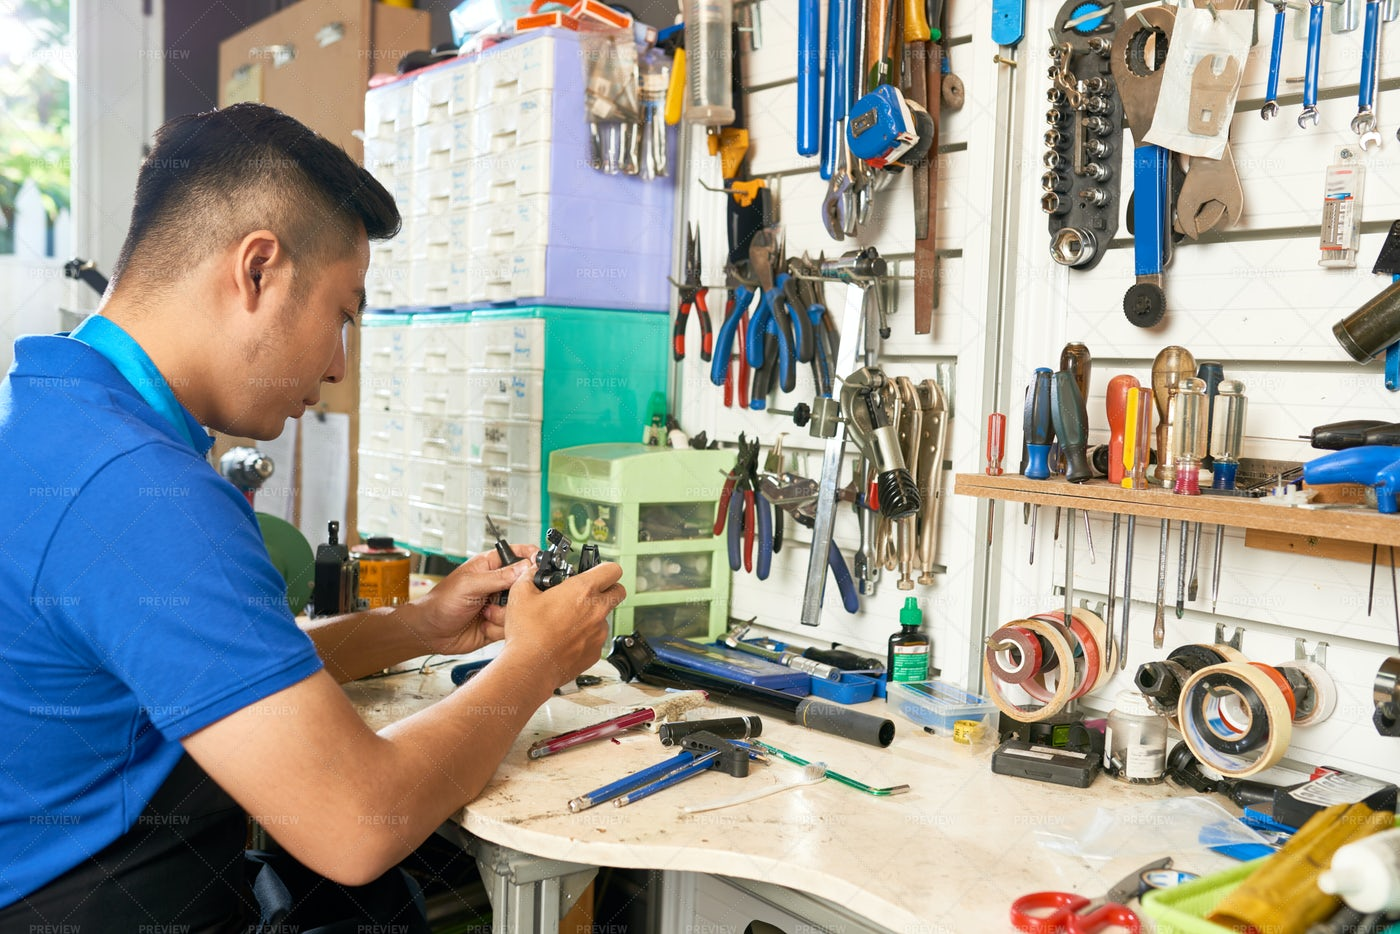 Man Working With Tools: Stock Photos